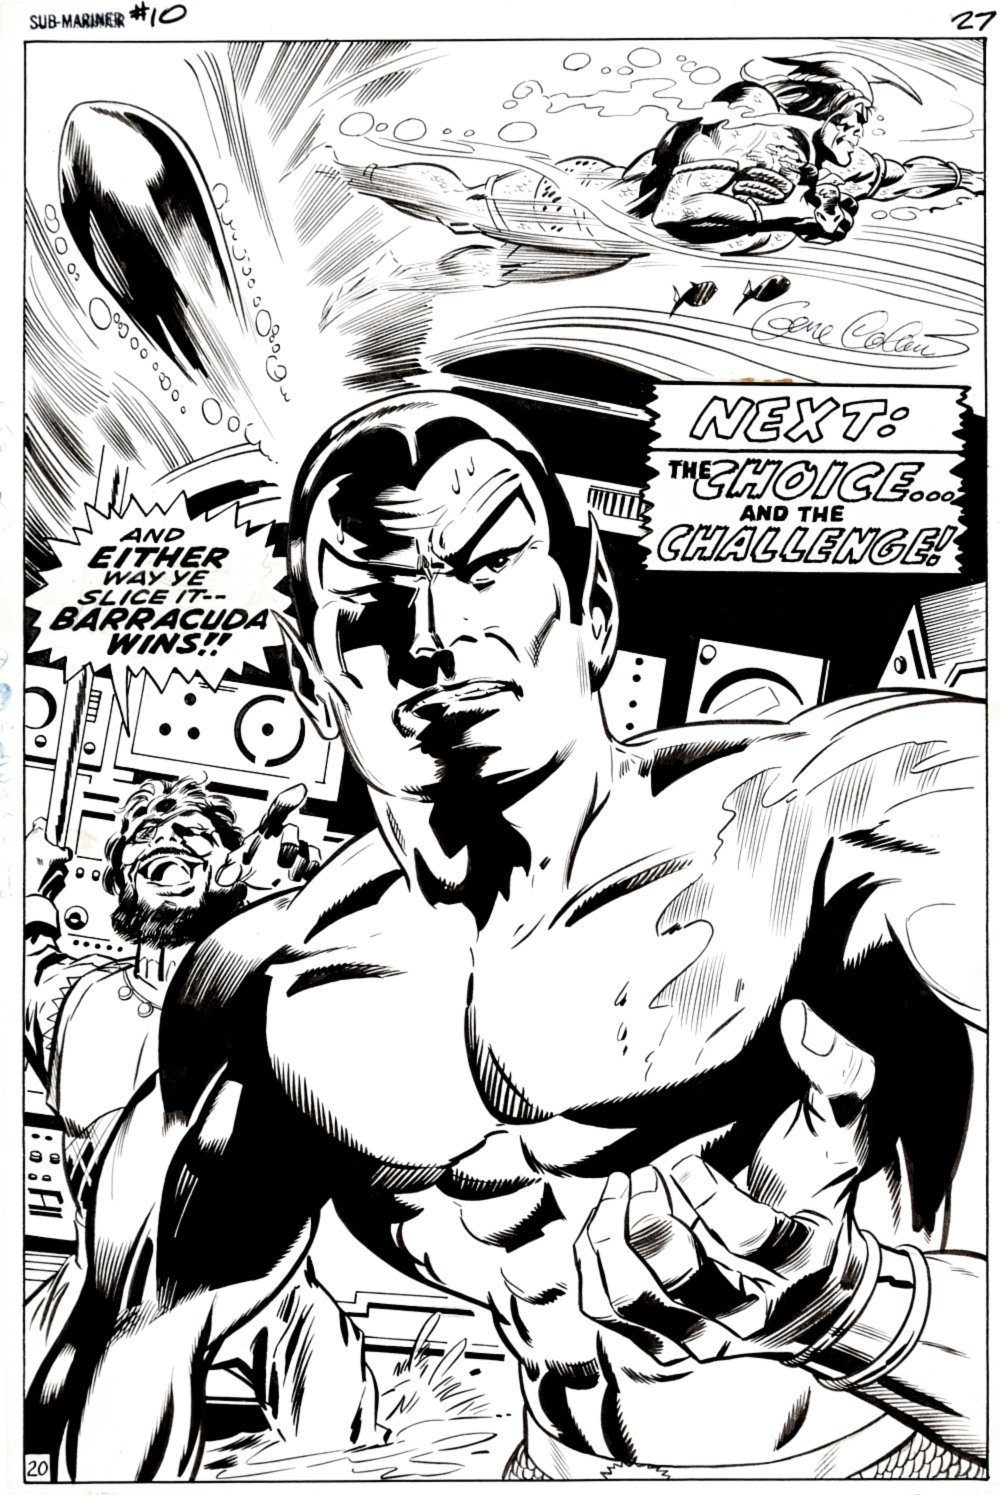 Sub-Mariner #10 FULL SPLASH (HUGE SUB-MARINER!) 1968